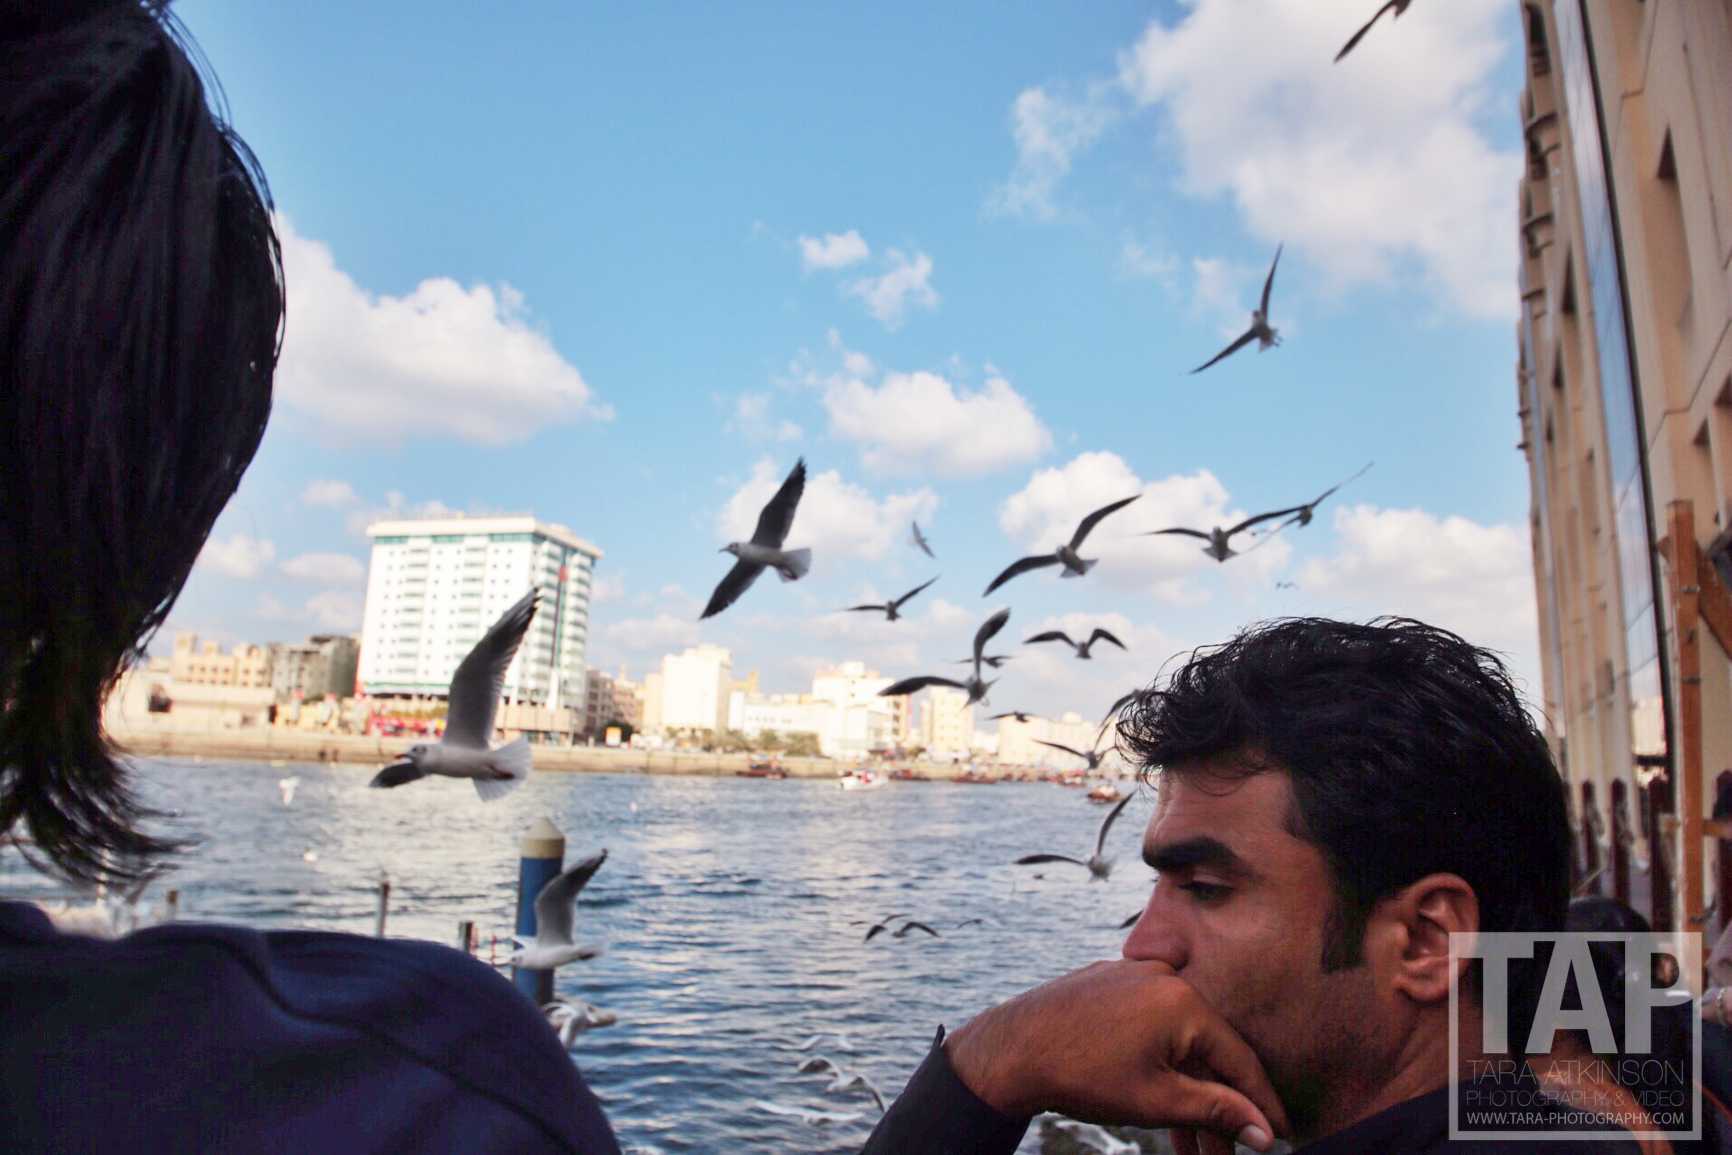 A moment for contemplation on national day as passerby's feed the seagulls